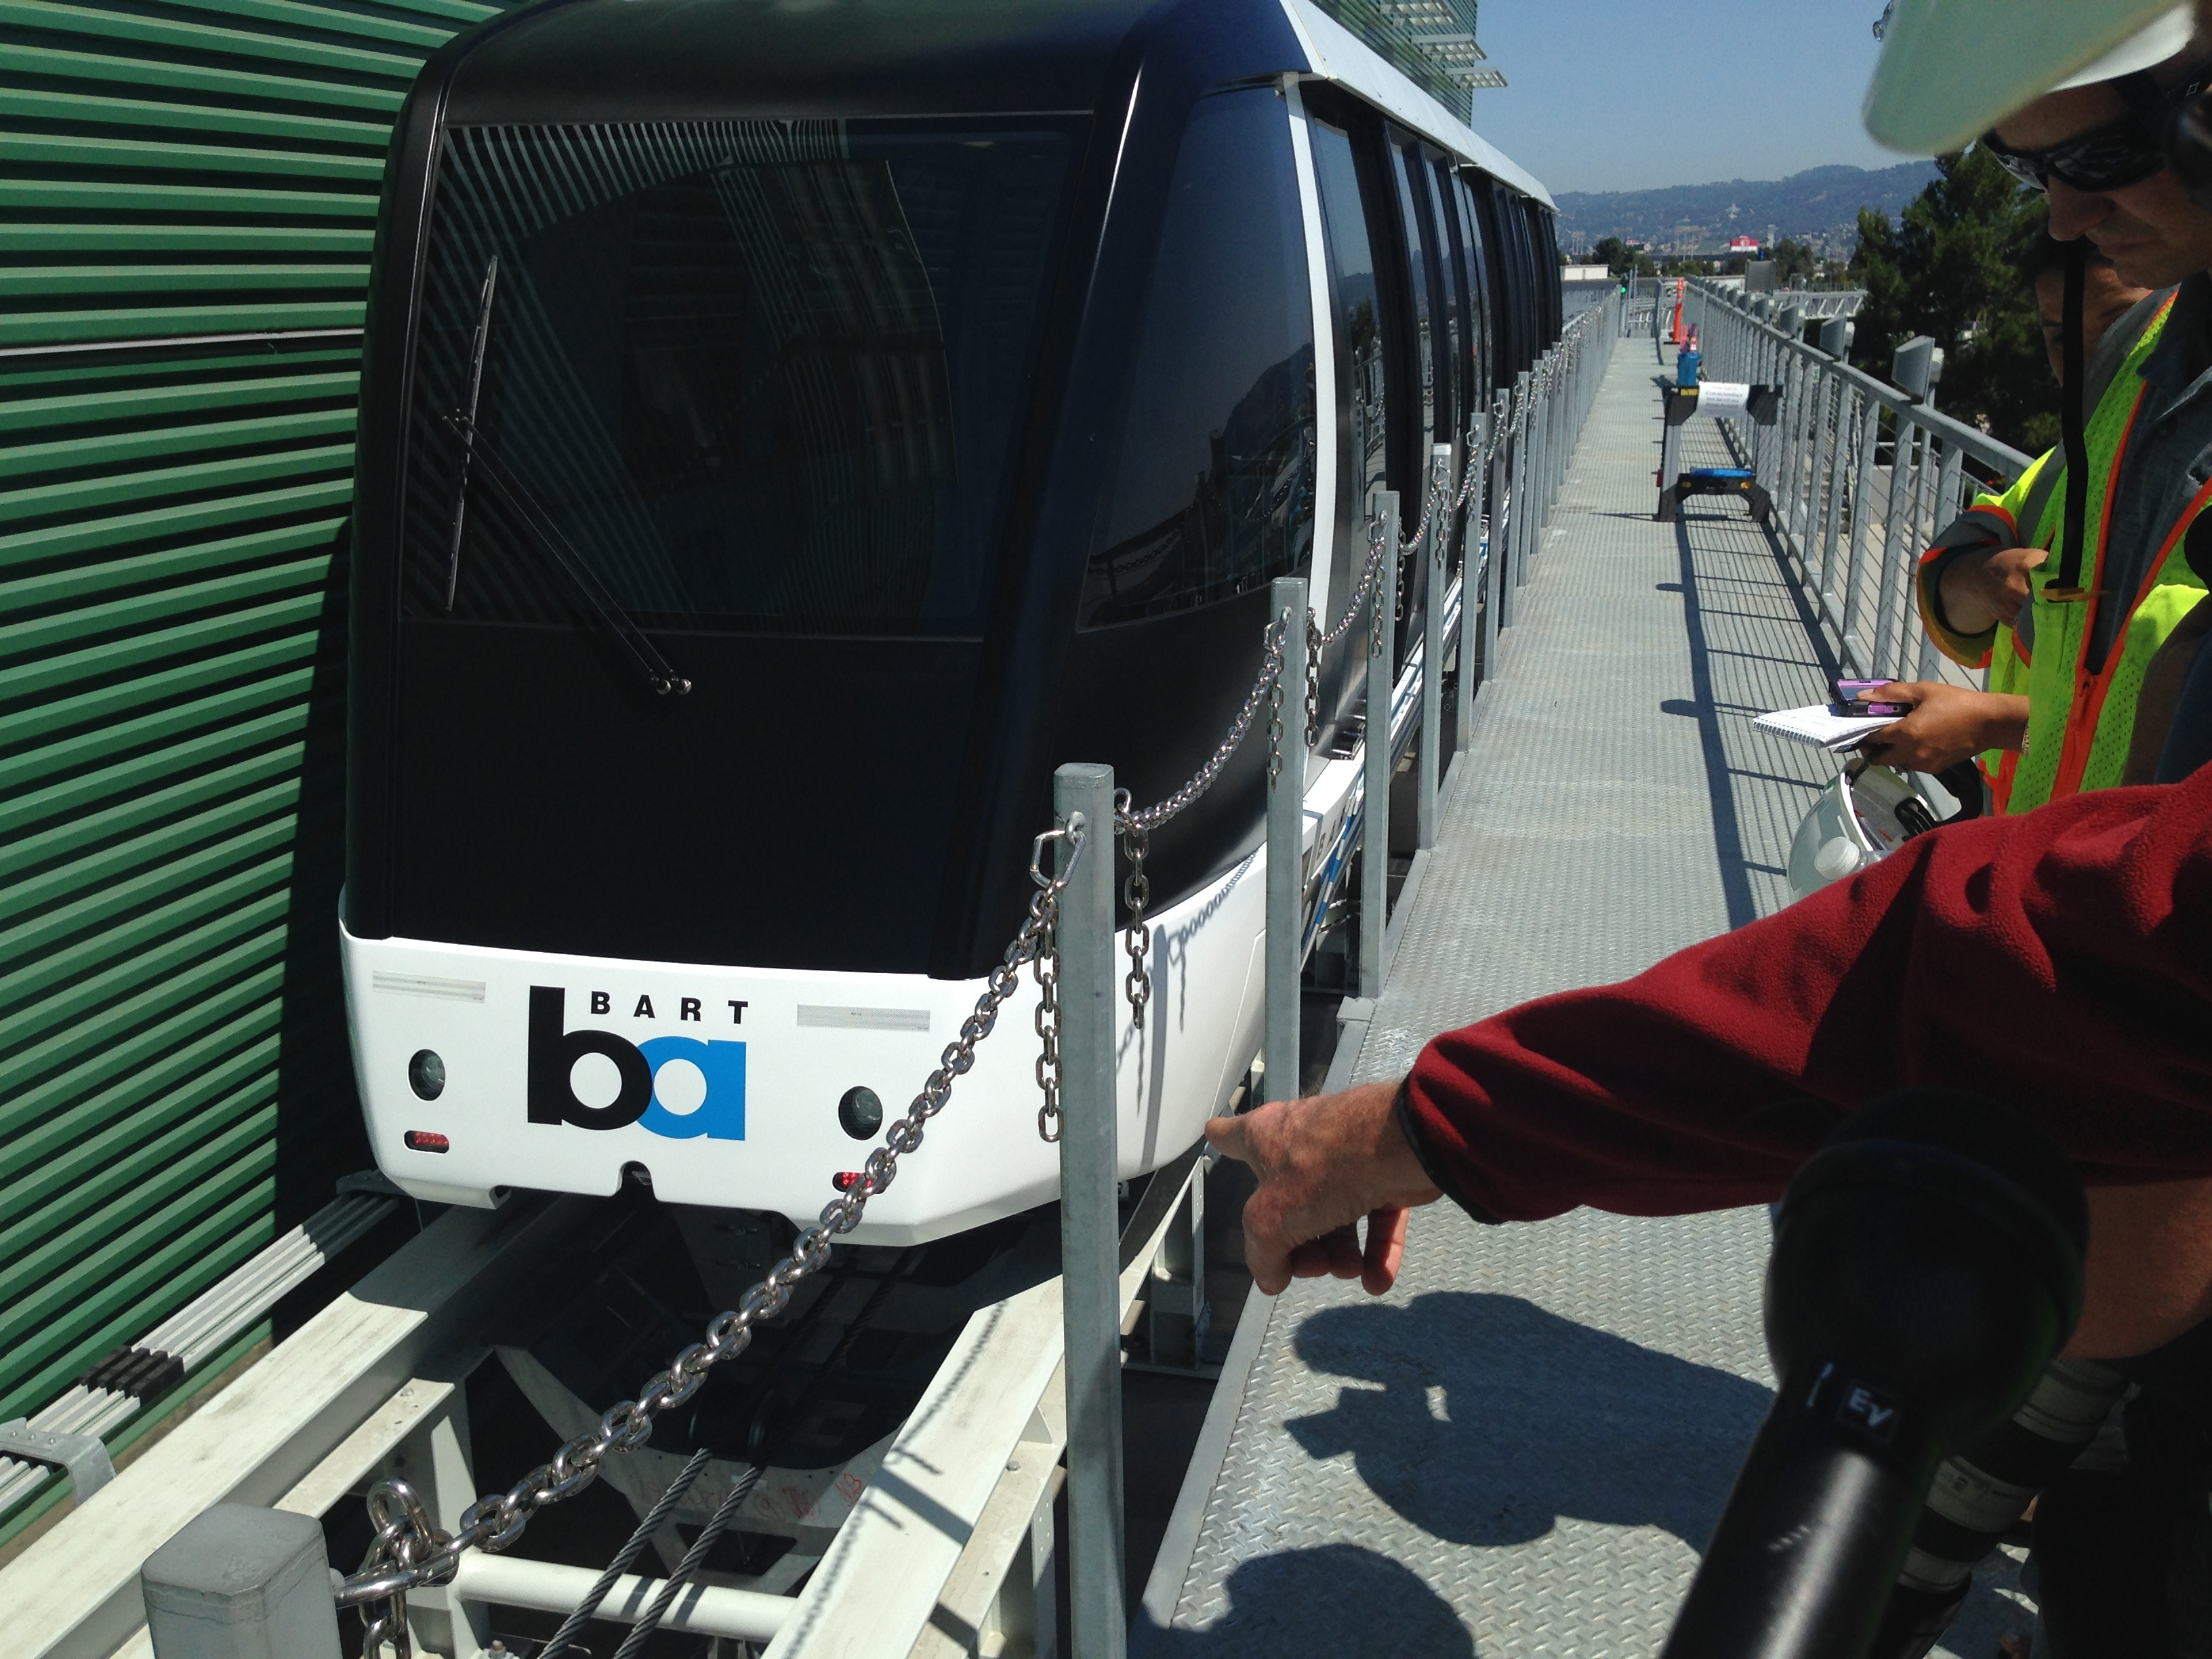 BART's Oakland Airport Connector Passes Crucial Test